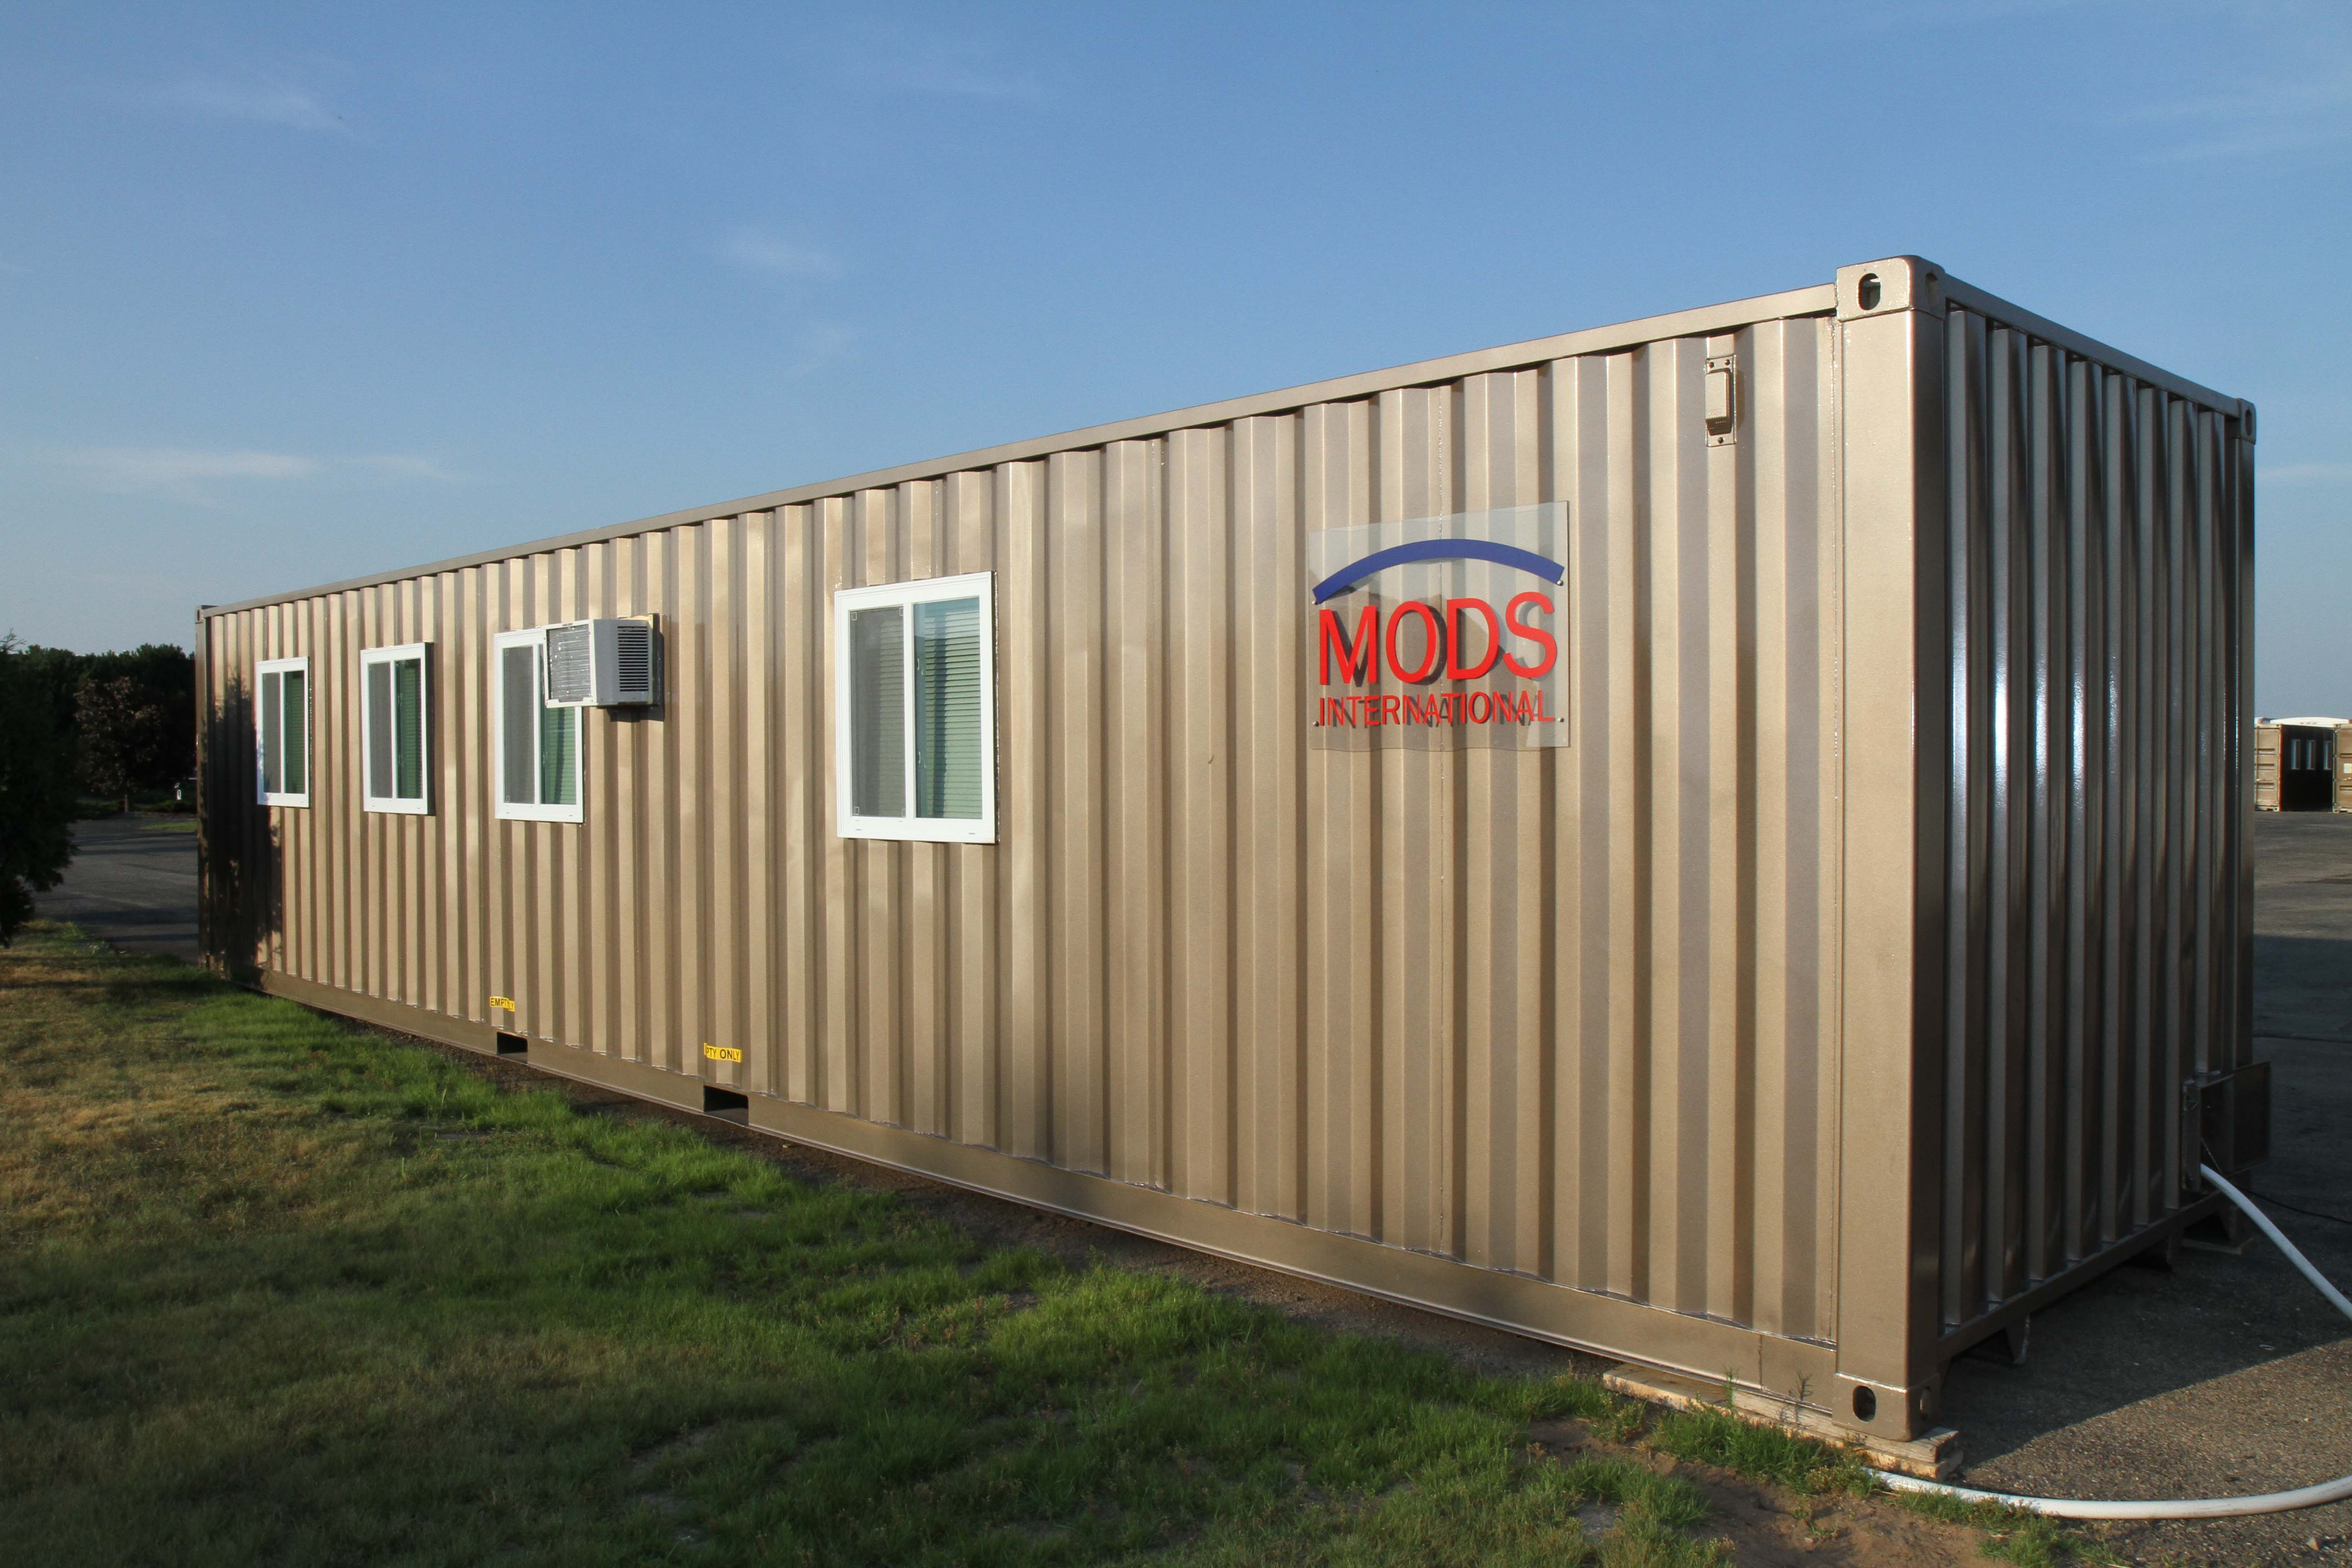 Mods International Portable Housing Units Available For